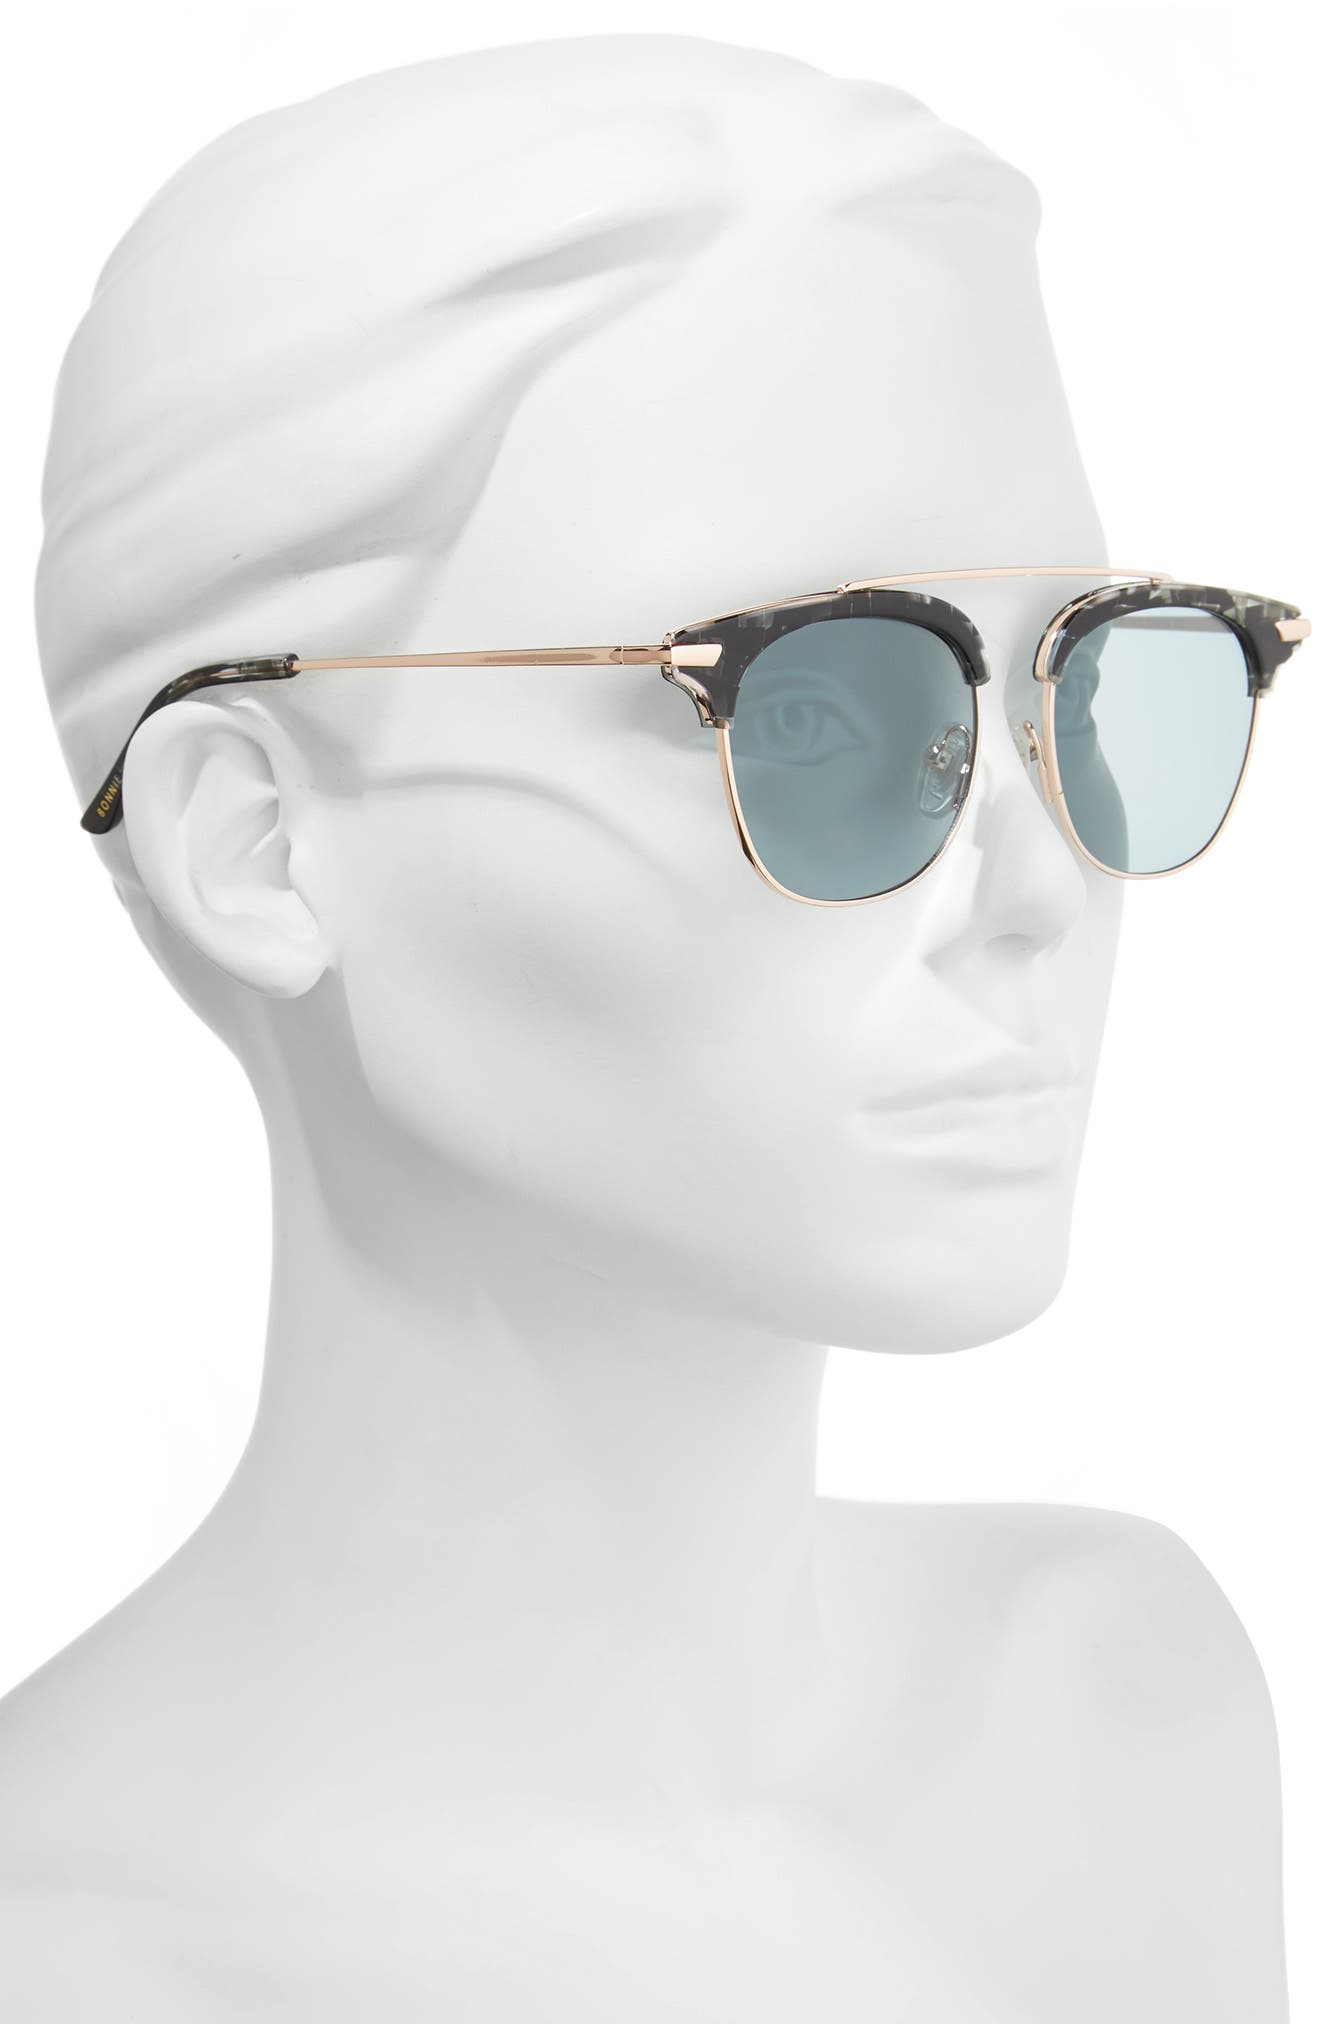 Midway 51mm Polarized Brow Bar Sunglasses,                             Alternate thumbnail 2, color,                             020